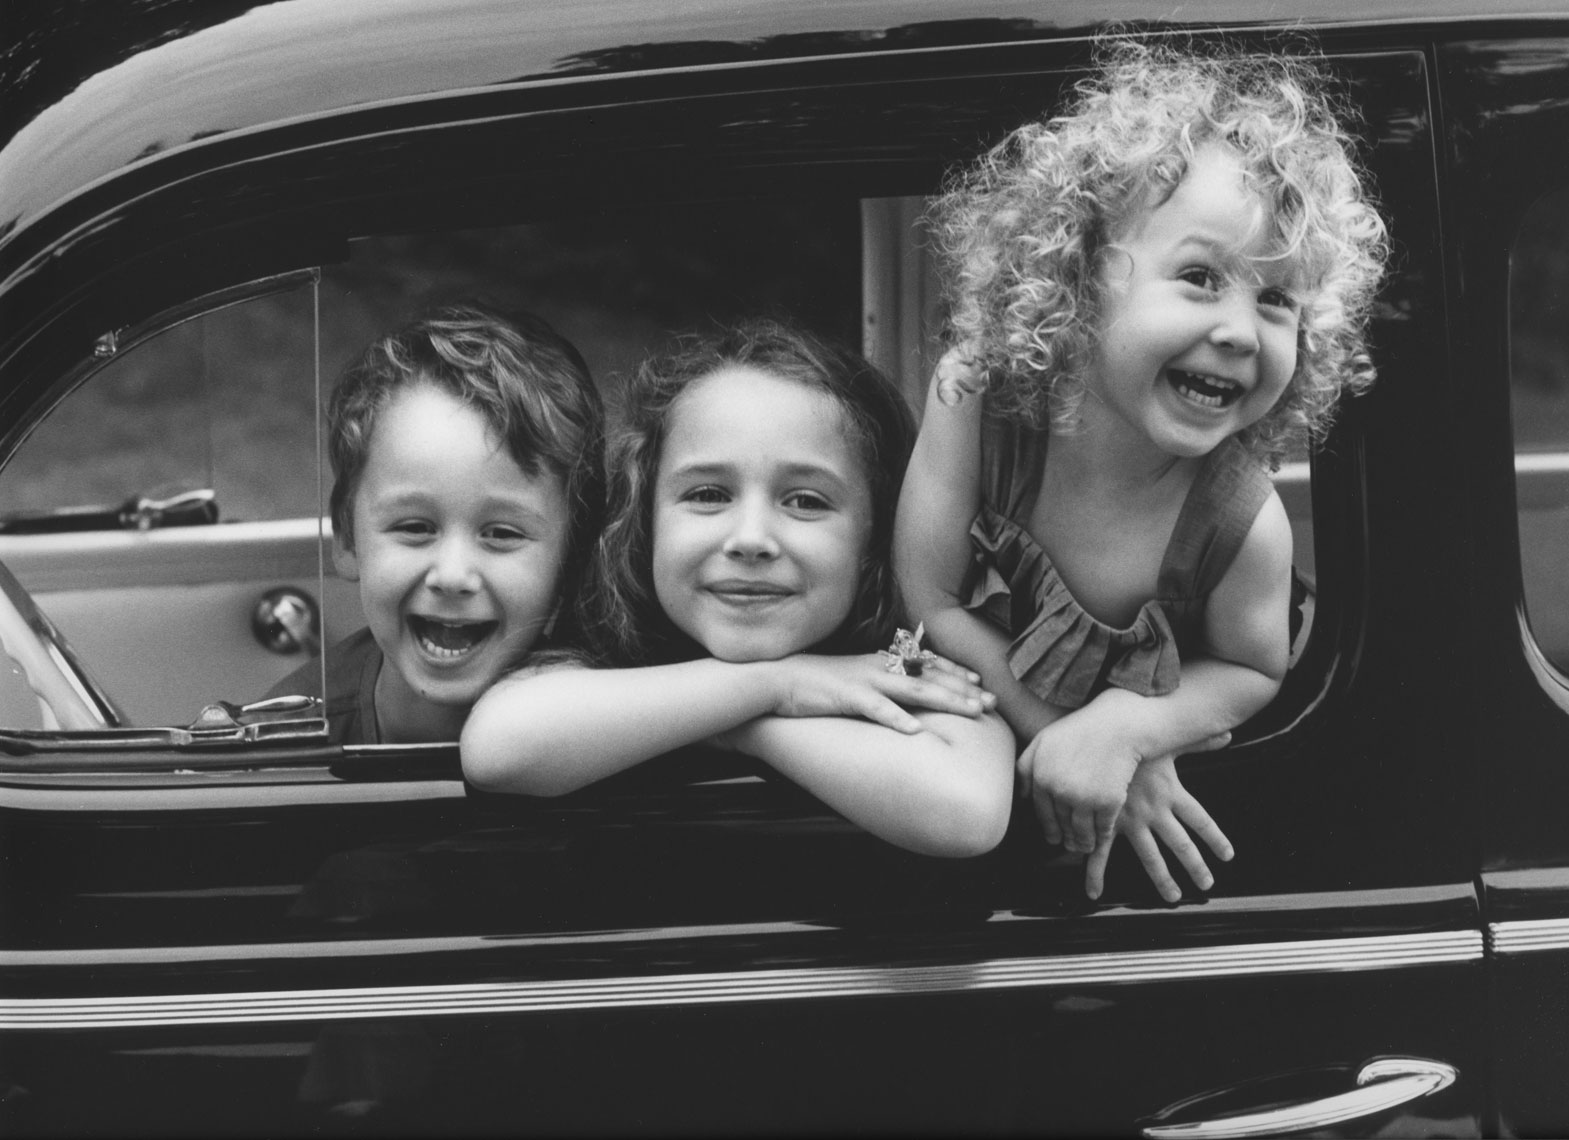 039-Laura-kids-in-car-fibe161